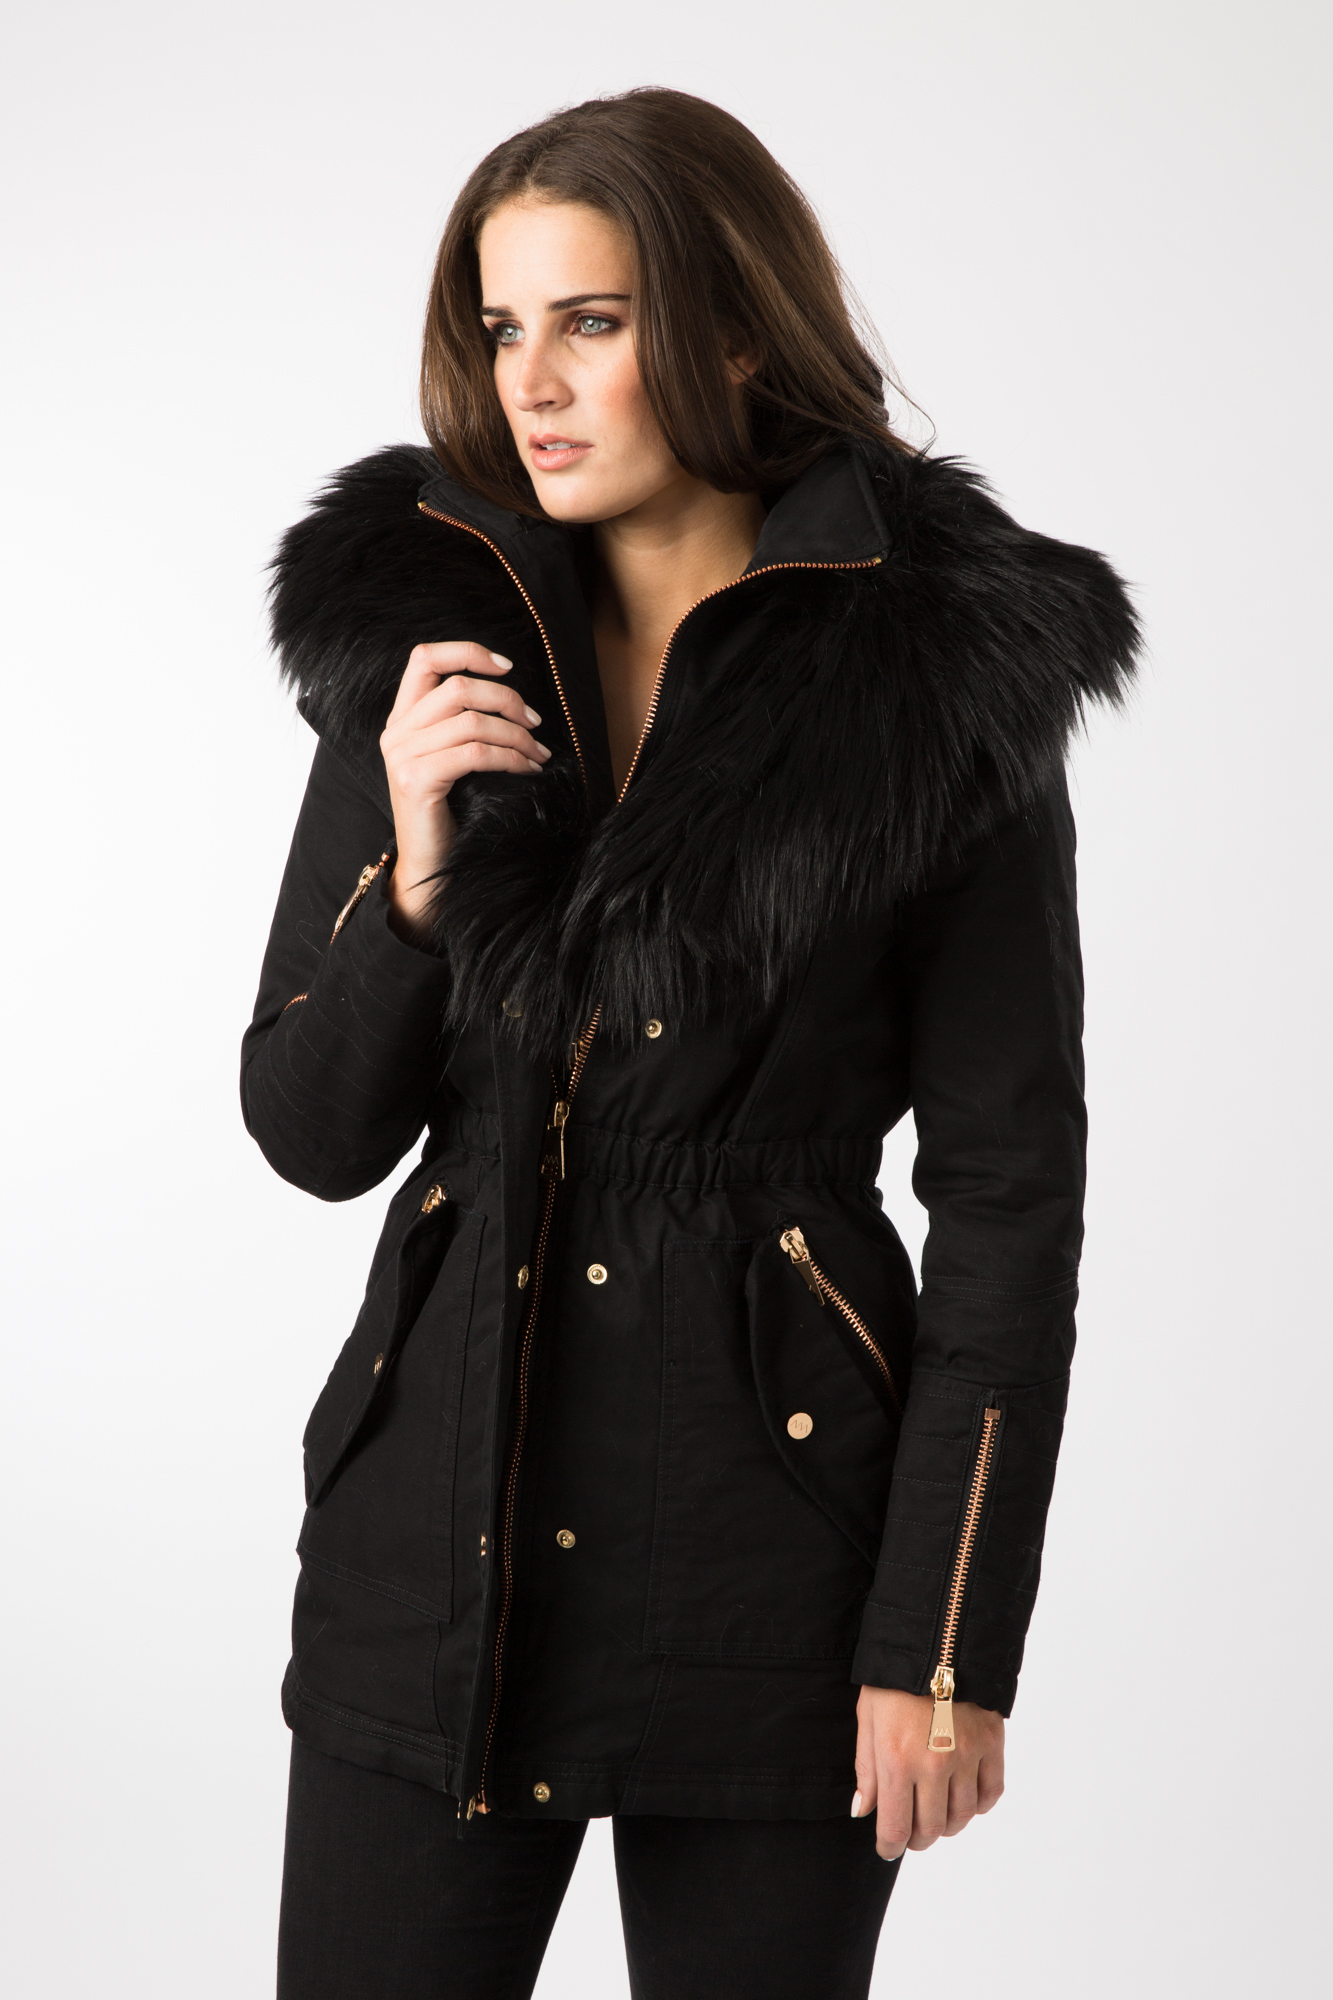 Shop from a variety of parkas jackets and coats in a variety of colors and lengths today. your browser is not supported. To use ASOS, we recommend using the latest versions of Chrome, Firefox, Safari or Internet Explorer ASOS DESIGN denim parka in washed black. $ Miss Selfridge Petite padded jacket in navy. $ New Look Faux Fur.